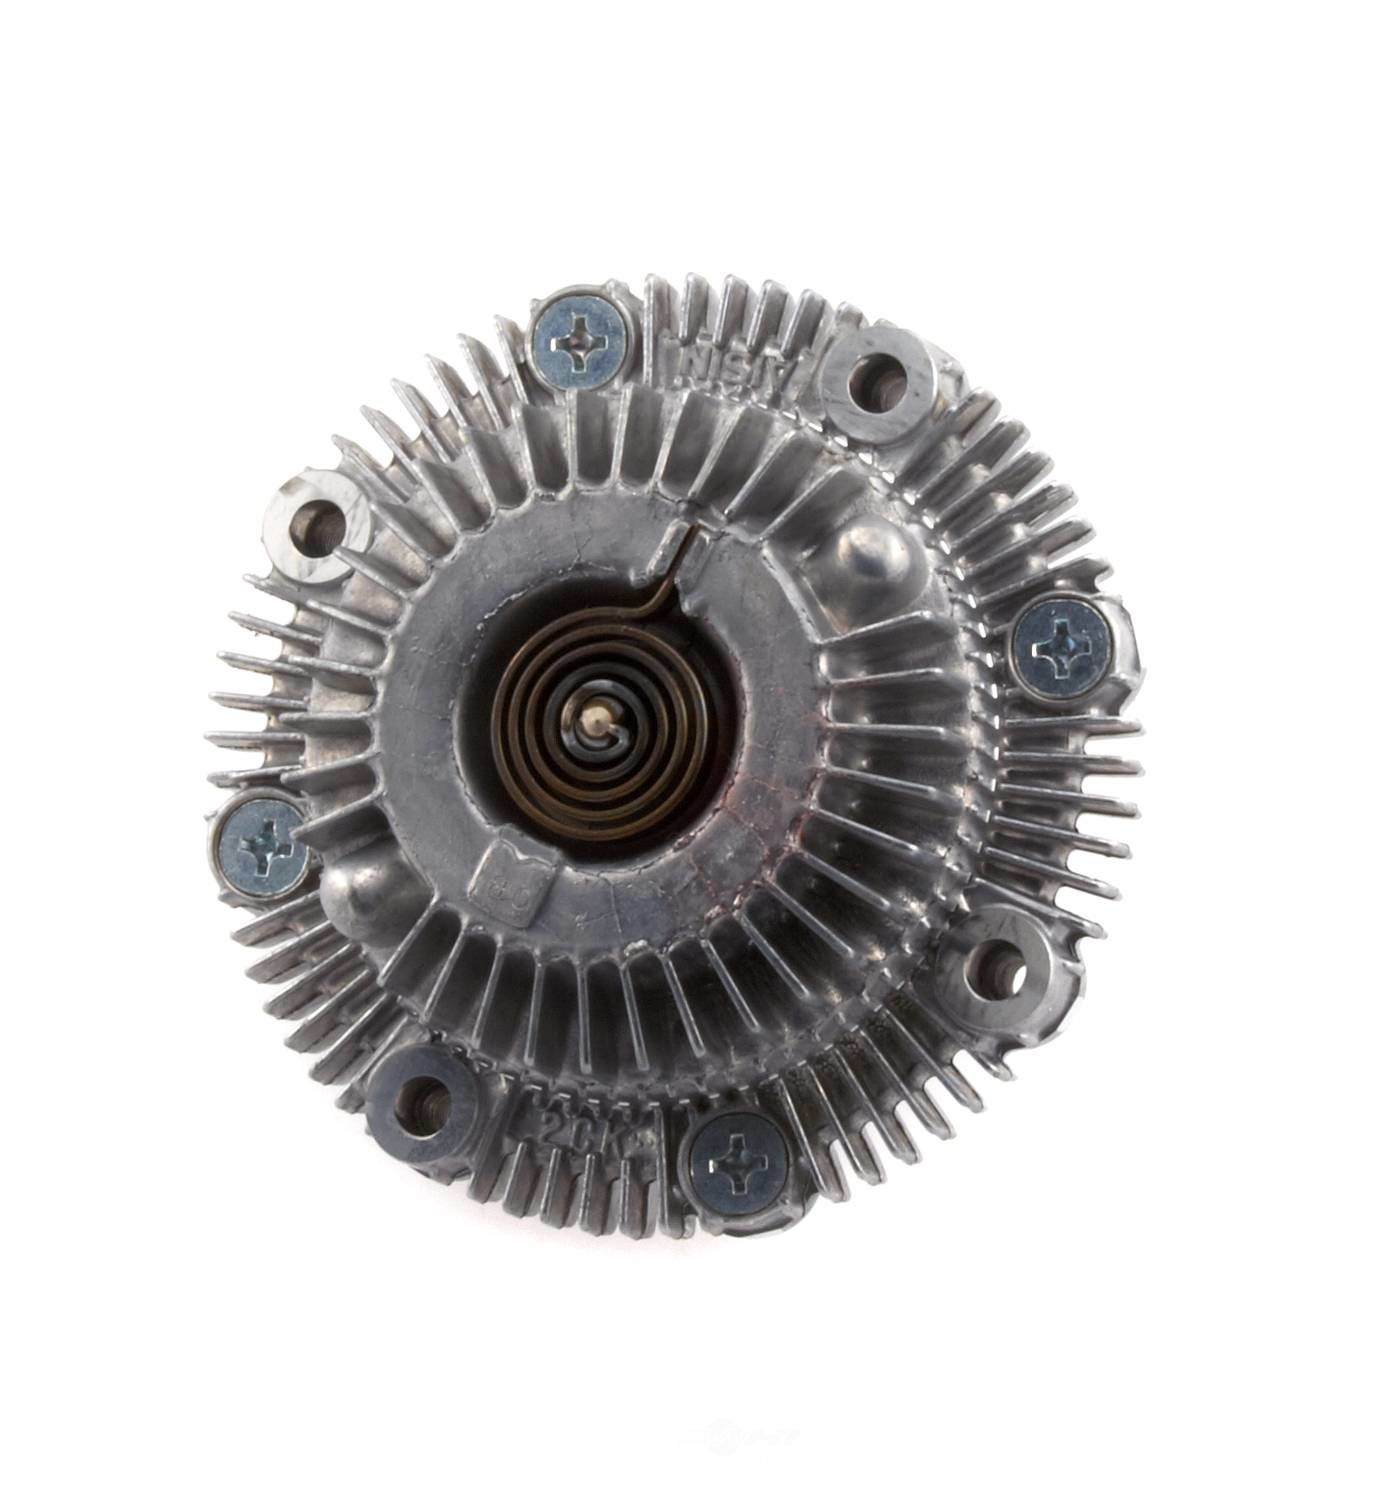 AISIN WORLD CORP. OF AMERICA - Engine Cooling Fan Clutch - AIS FCS-002